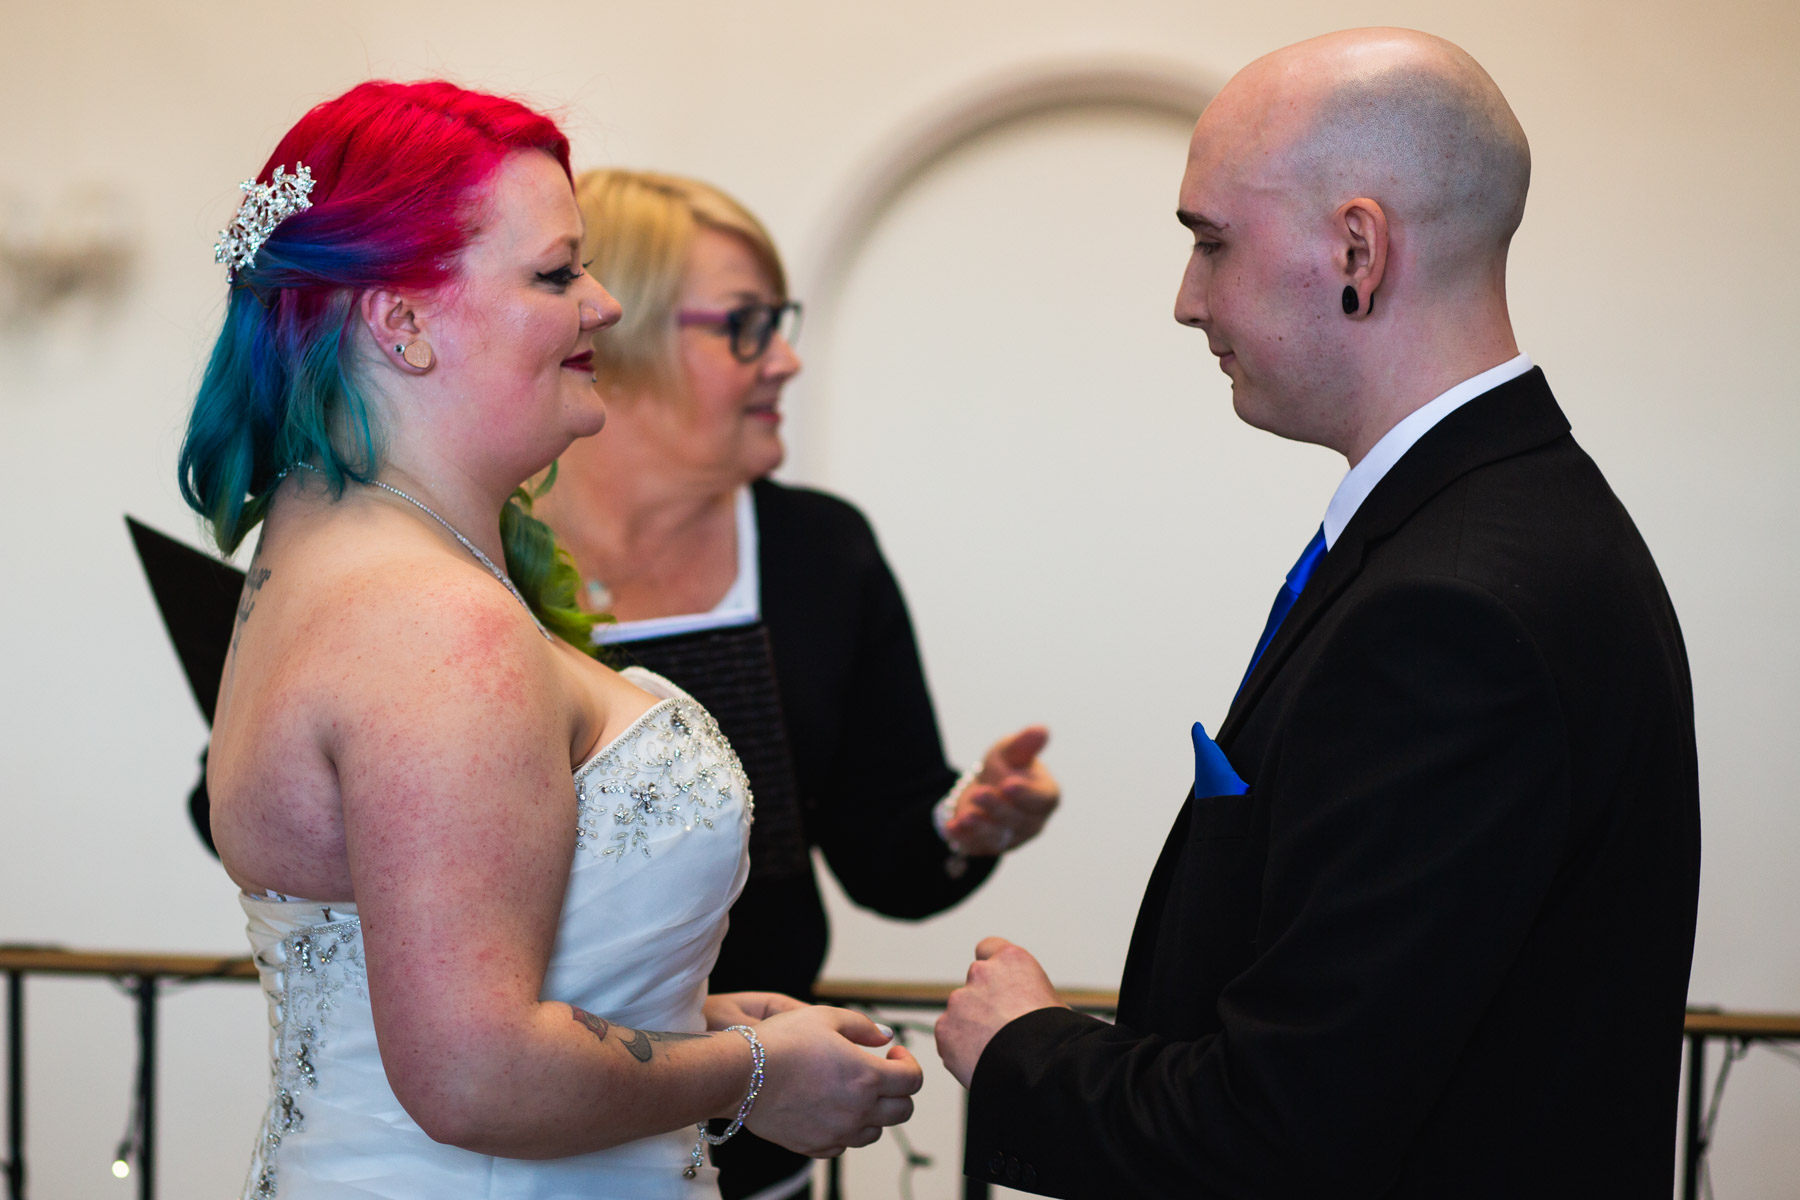 Bride and groom giving their vowels